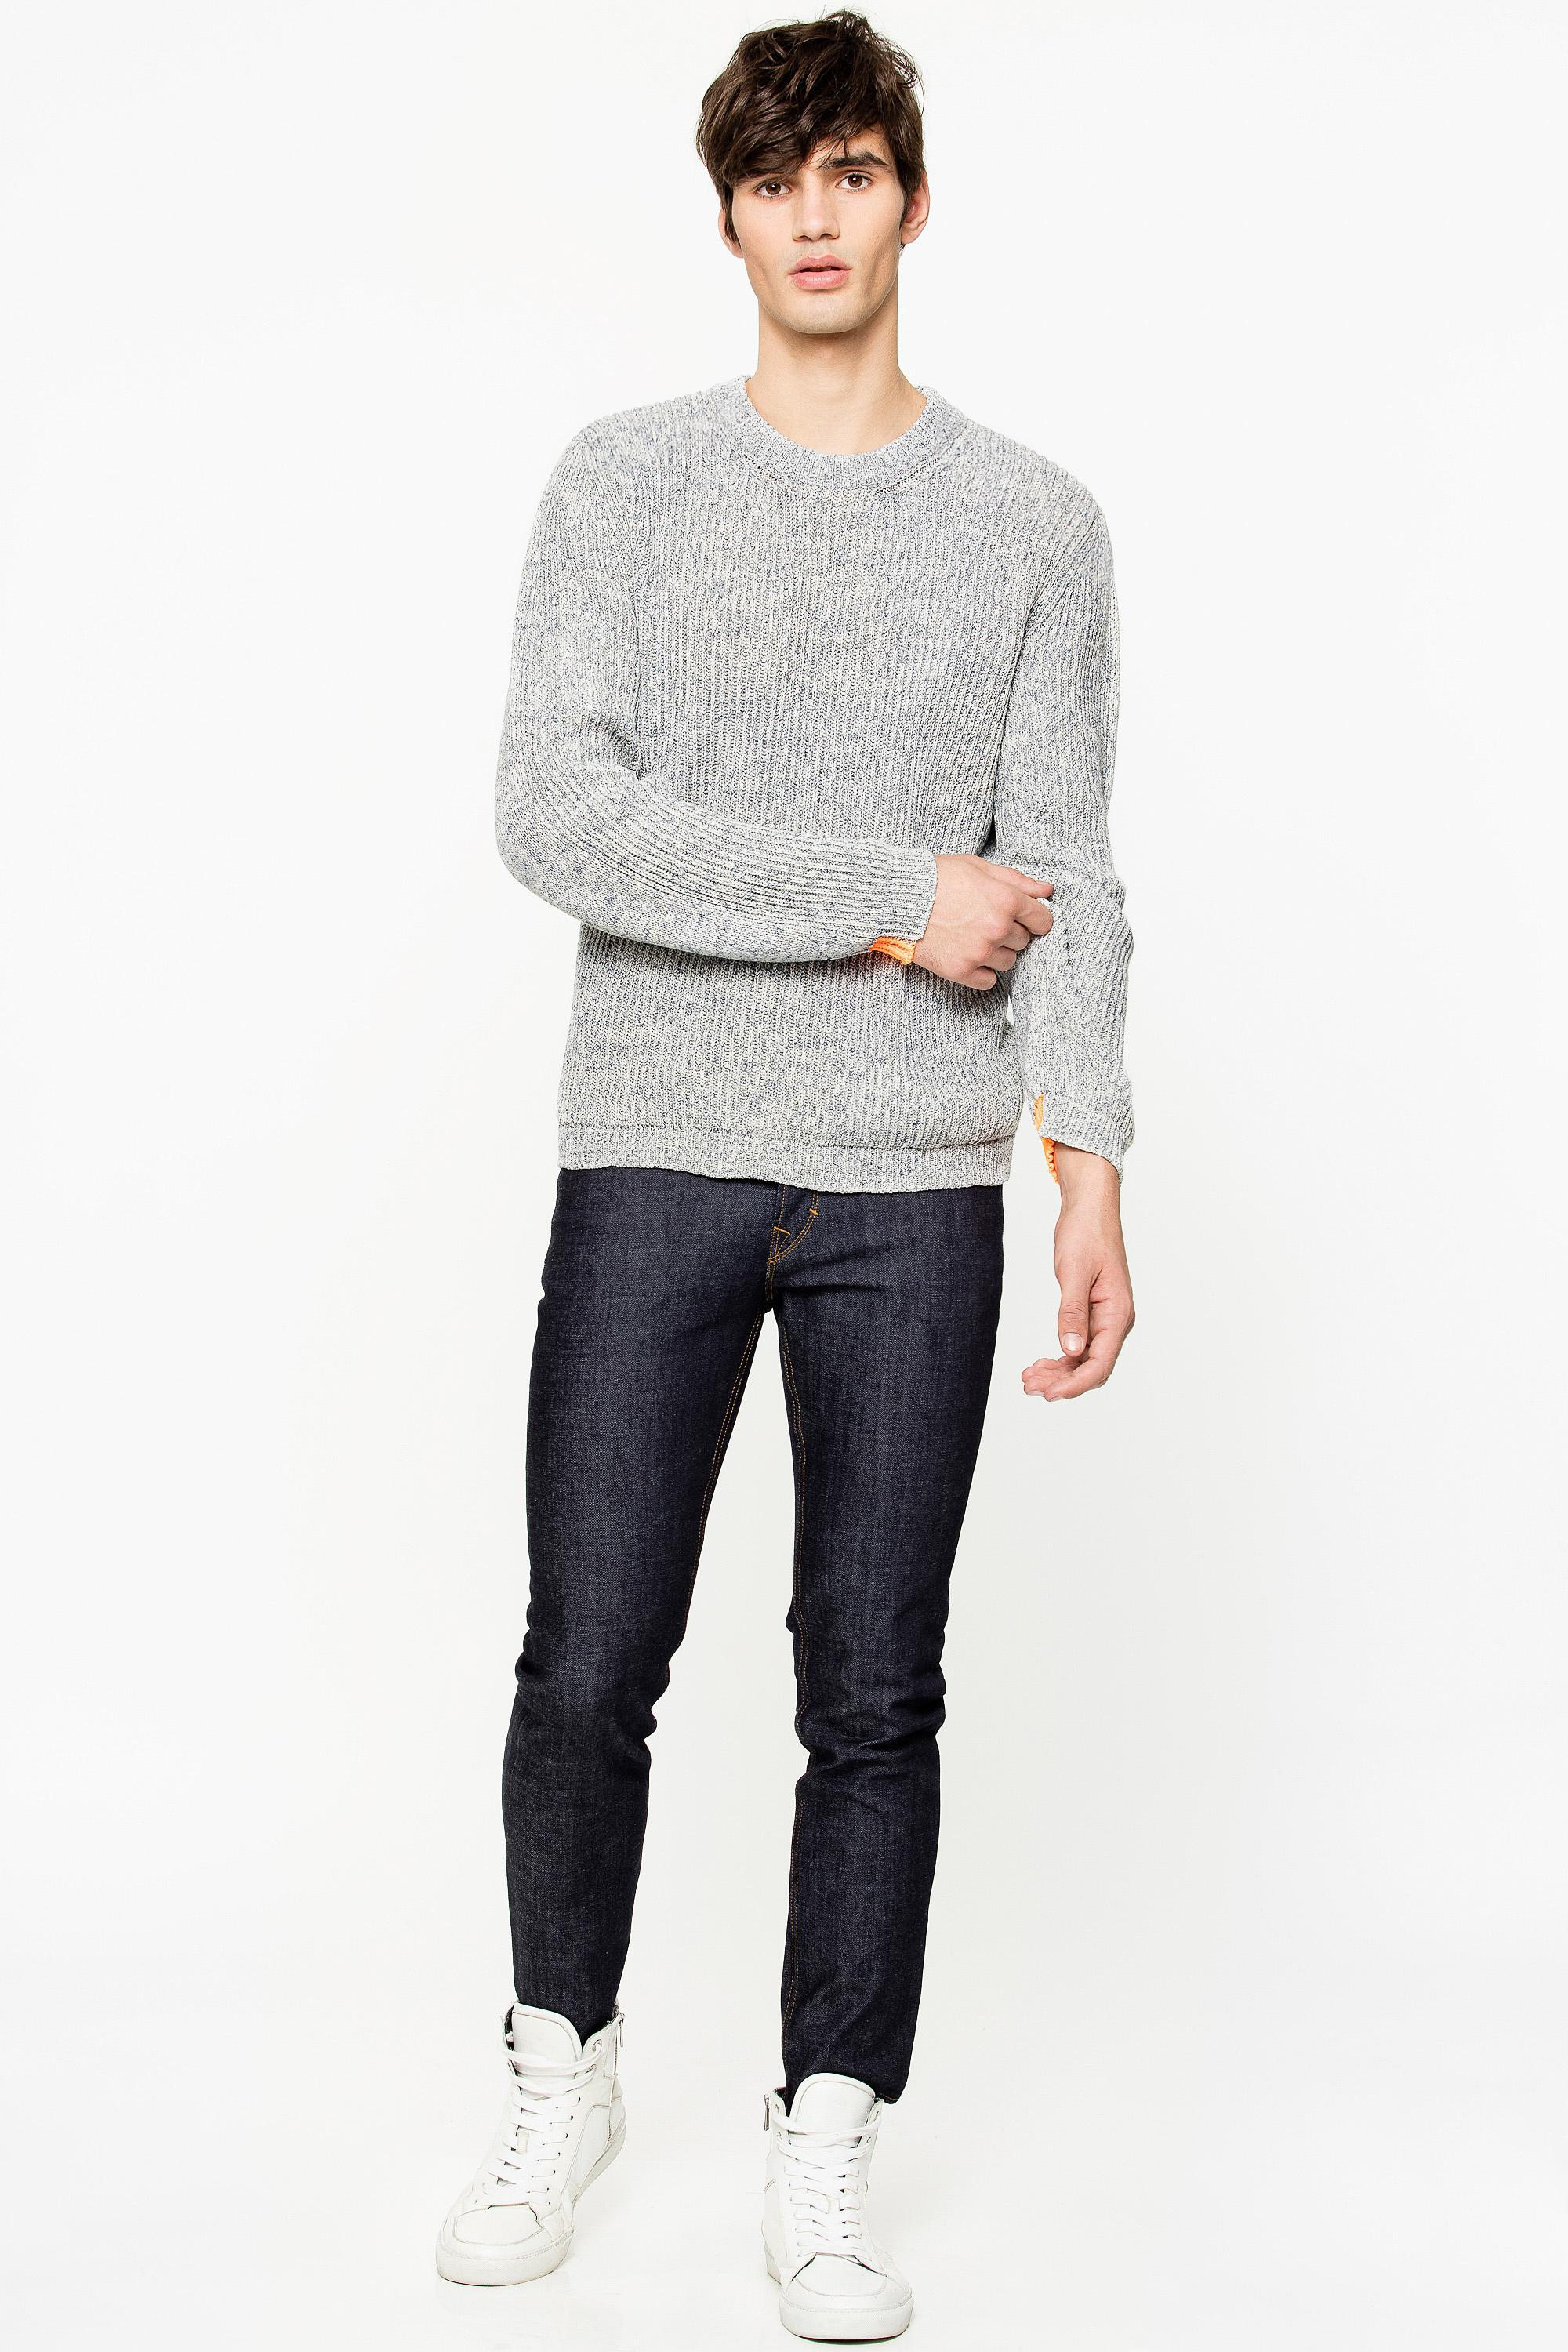 Zadig Sweater Kennedy Voltaire amp; Gray Men In For Lyst qwZqAfHr